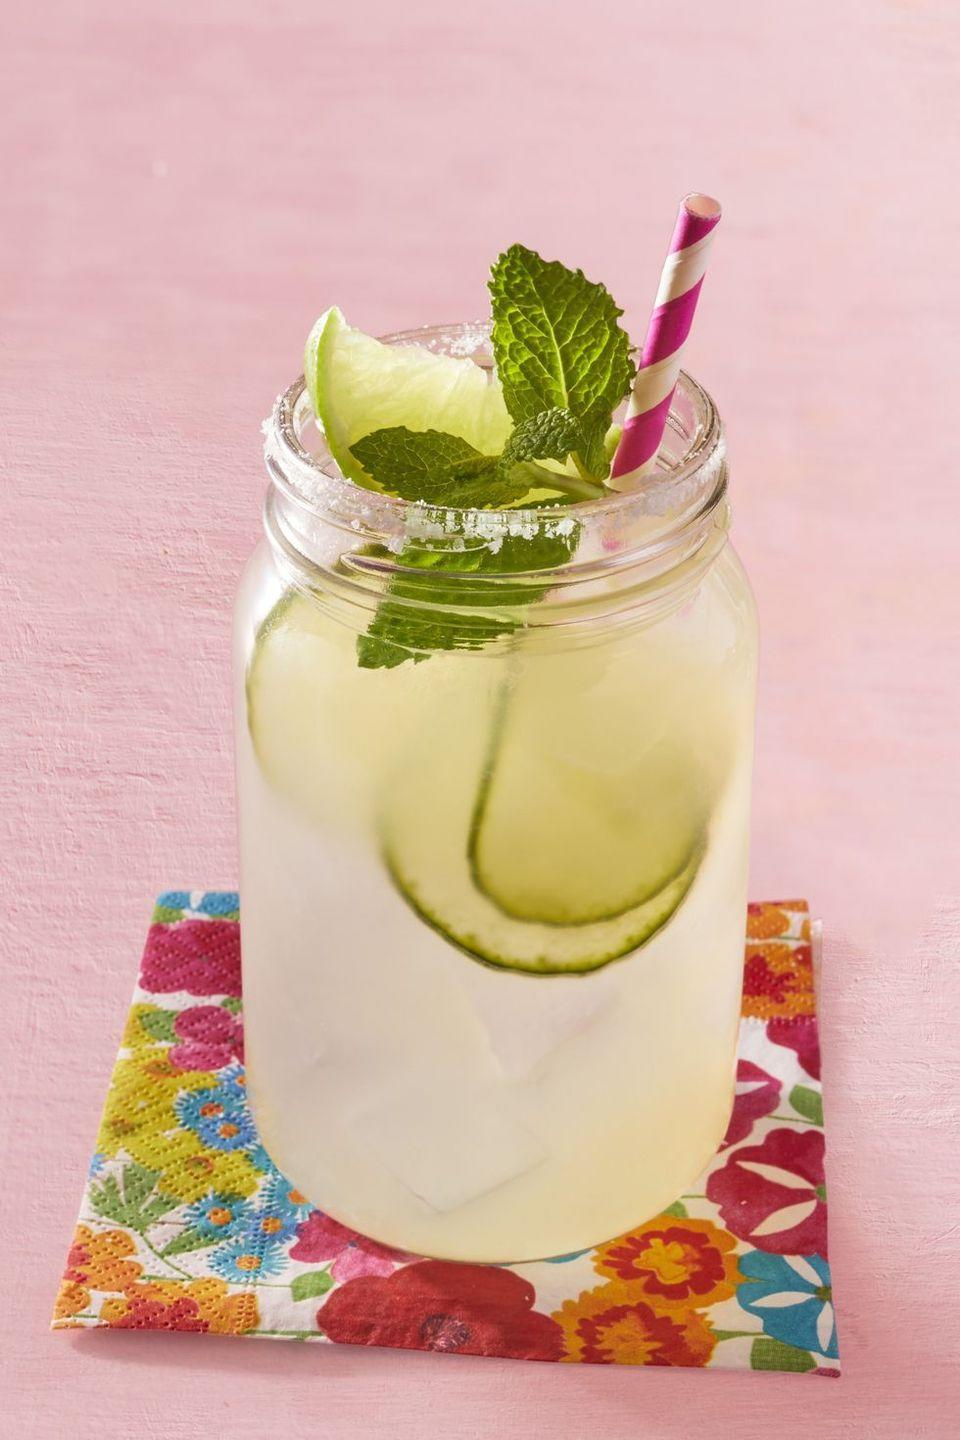 """<p>This is not your basic margarita recipe. It's bursting with the flavors of mint and cilantro, plus it has a fresh, cooling effect thanks to cucumber slices. You may never go back to plain margaritas again!</p><p><a href=""""https://www.thepioneerwoman.com/food-cooking/recipes/a32303003/margareeta-recipe/"""" rel=""""nofollow noopener"""" target=""""_blank"""" data-ylk=""""slk:Get Ree's recipe."""" class=""""link rapid-noclick-resp""""><strong>Get Ree's recipe.</strong></a></p><p><a class=""""link rapid-noclick-resp"""" href=""""https://go.redirectingat.com?id=74968X1596630&url=https%3A%2F%2Fwww.walmart.com%2Fsearch%2F%3Fquery%3Dpaper%2Bstraws&sref=https%3A%2F%2Fwww.thepioneerwoman.com%2Ffood-cooking%2Fmeals-menus%2Fg36432840%2Ffourth-of-july-drinks%2F"""" rel=""""nofollow noopener"""" target=""""_blank"""" data-ylk=""""slk:SHOP PAPER STRAWS"""">SHOP PAPER STRAWS </a></p>"""